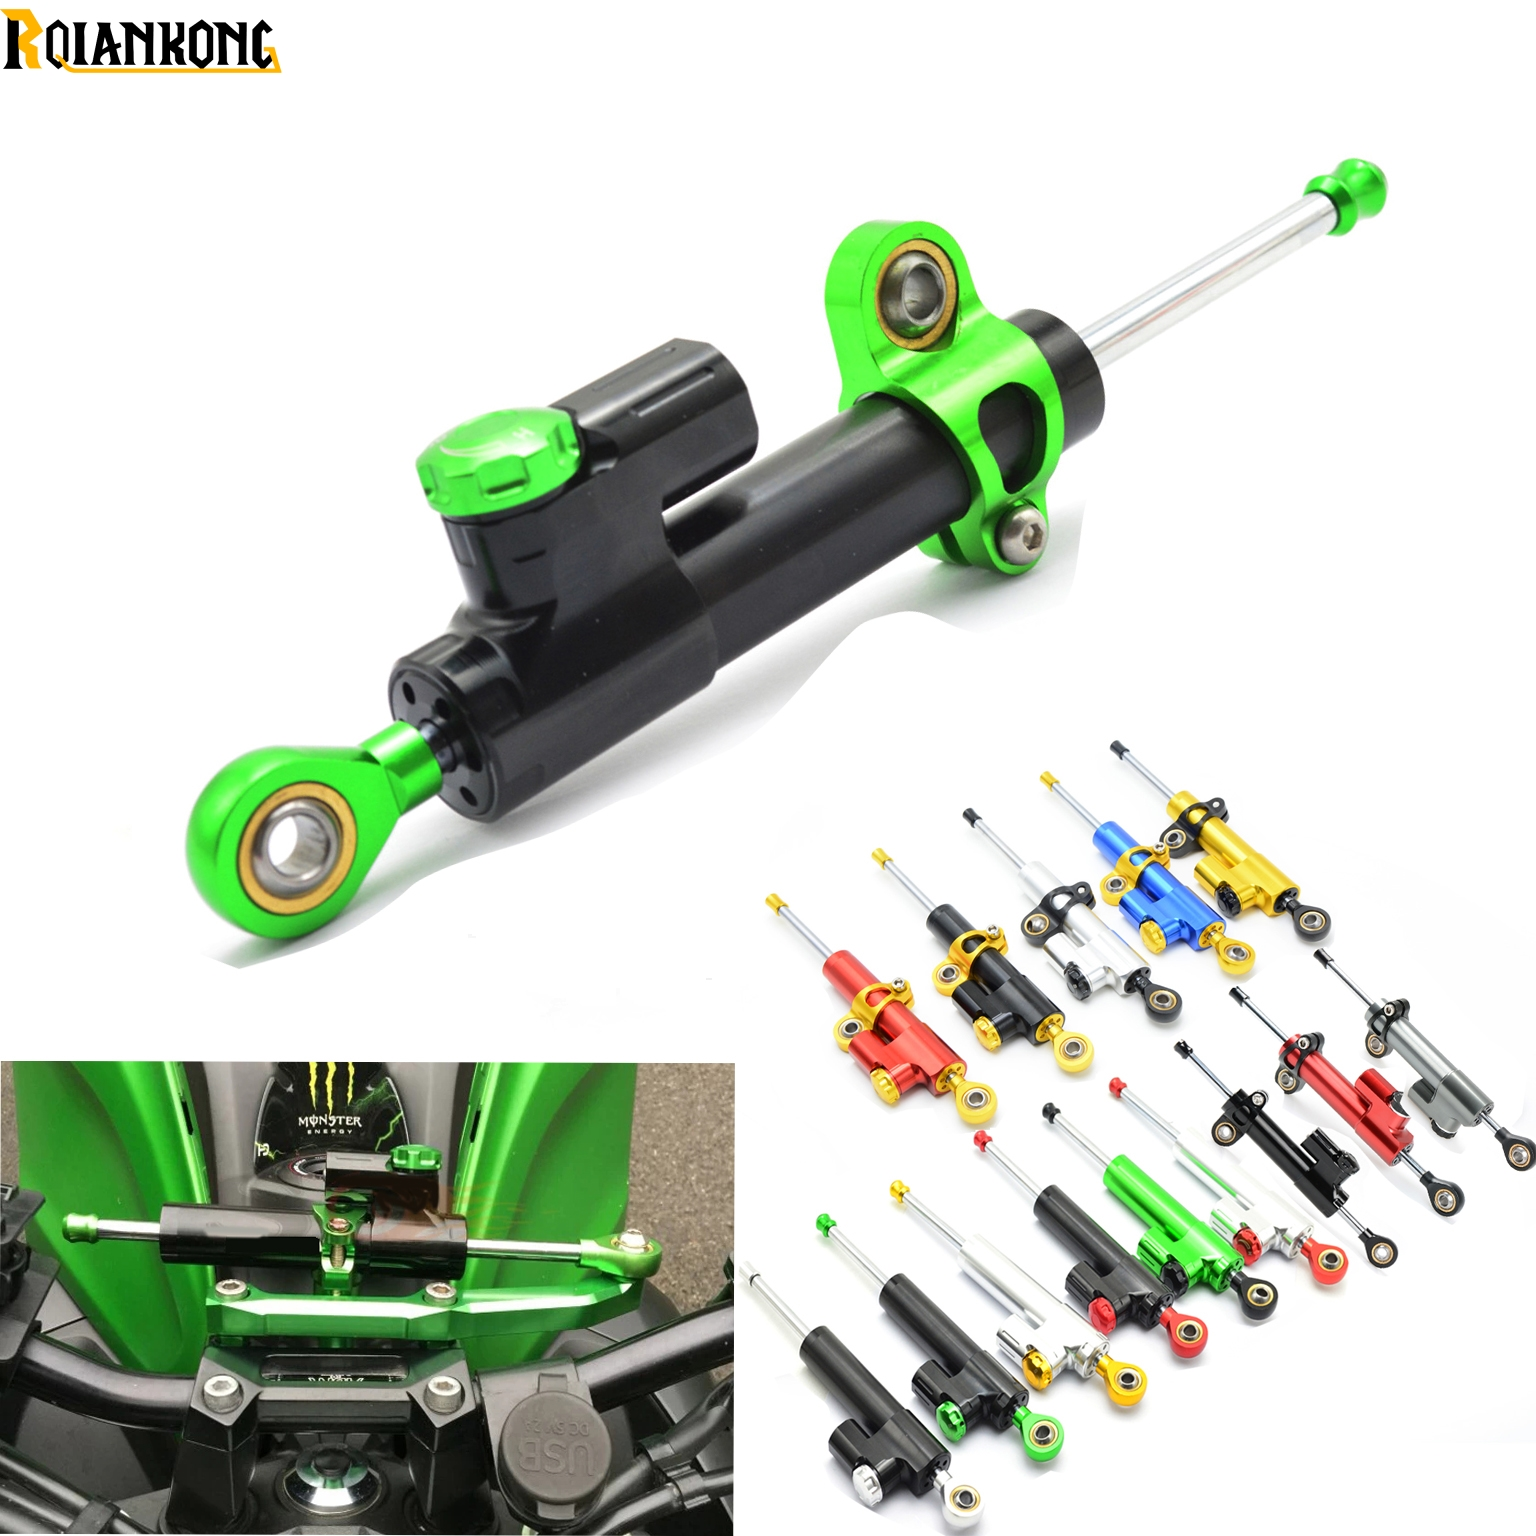 CNC Aluminum Motorcycle Steering Damper Stabilizer Linear Safe Control for Kawasaki ZRX1100 ZRX1200 ZX1100 ZZR1400<br>